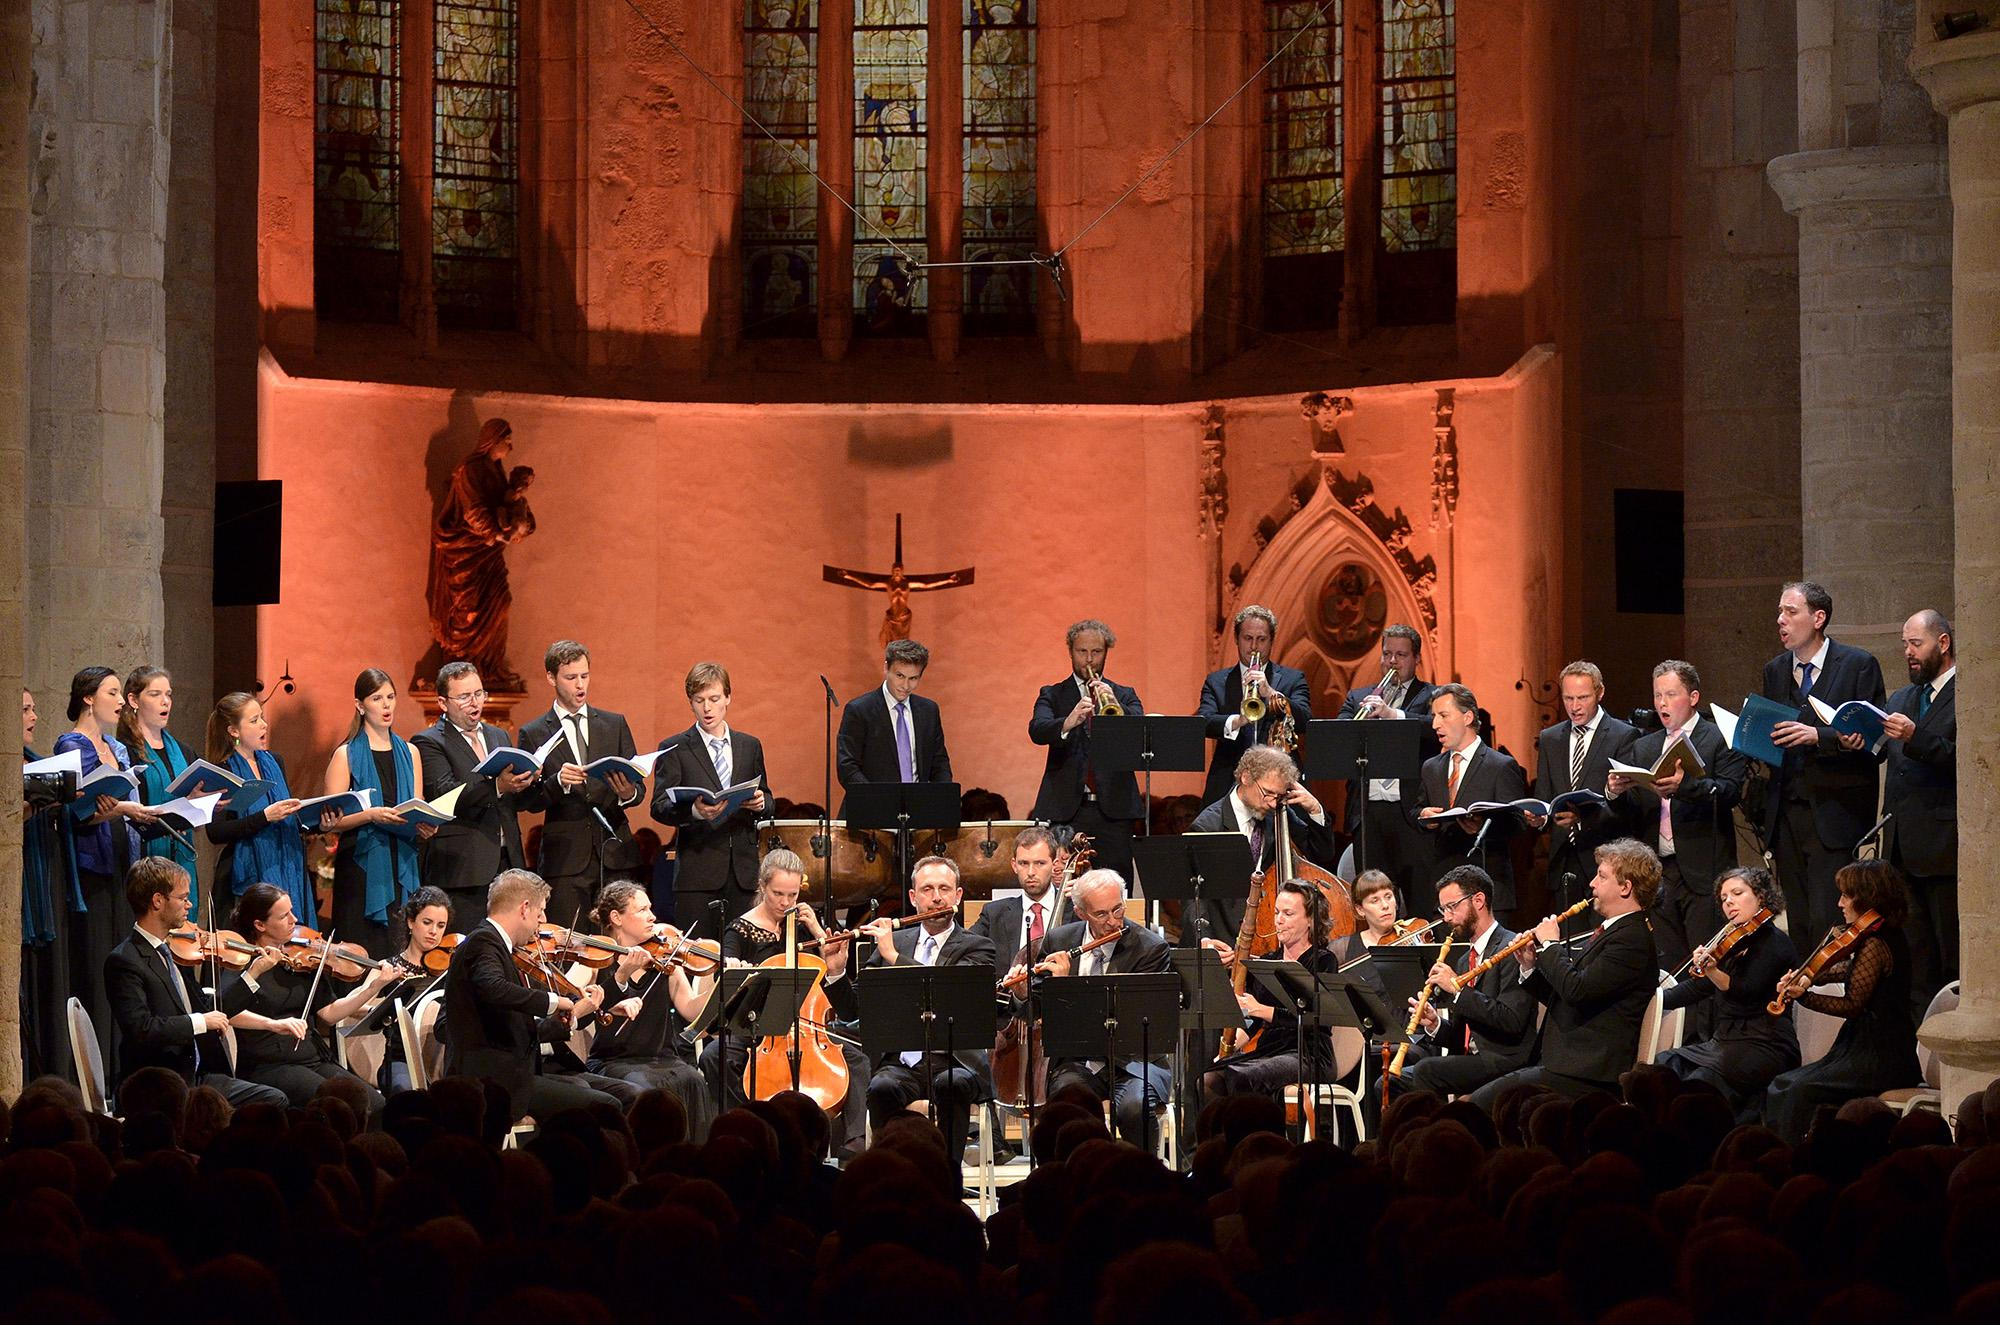 Vox Luminis under the direction of Lionel Meunier (second from right) - © CCR Ambronay